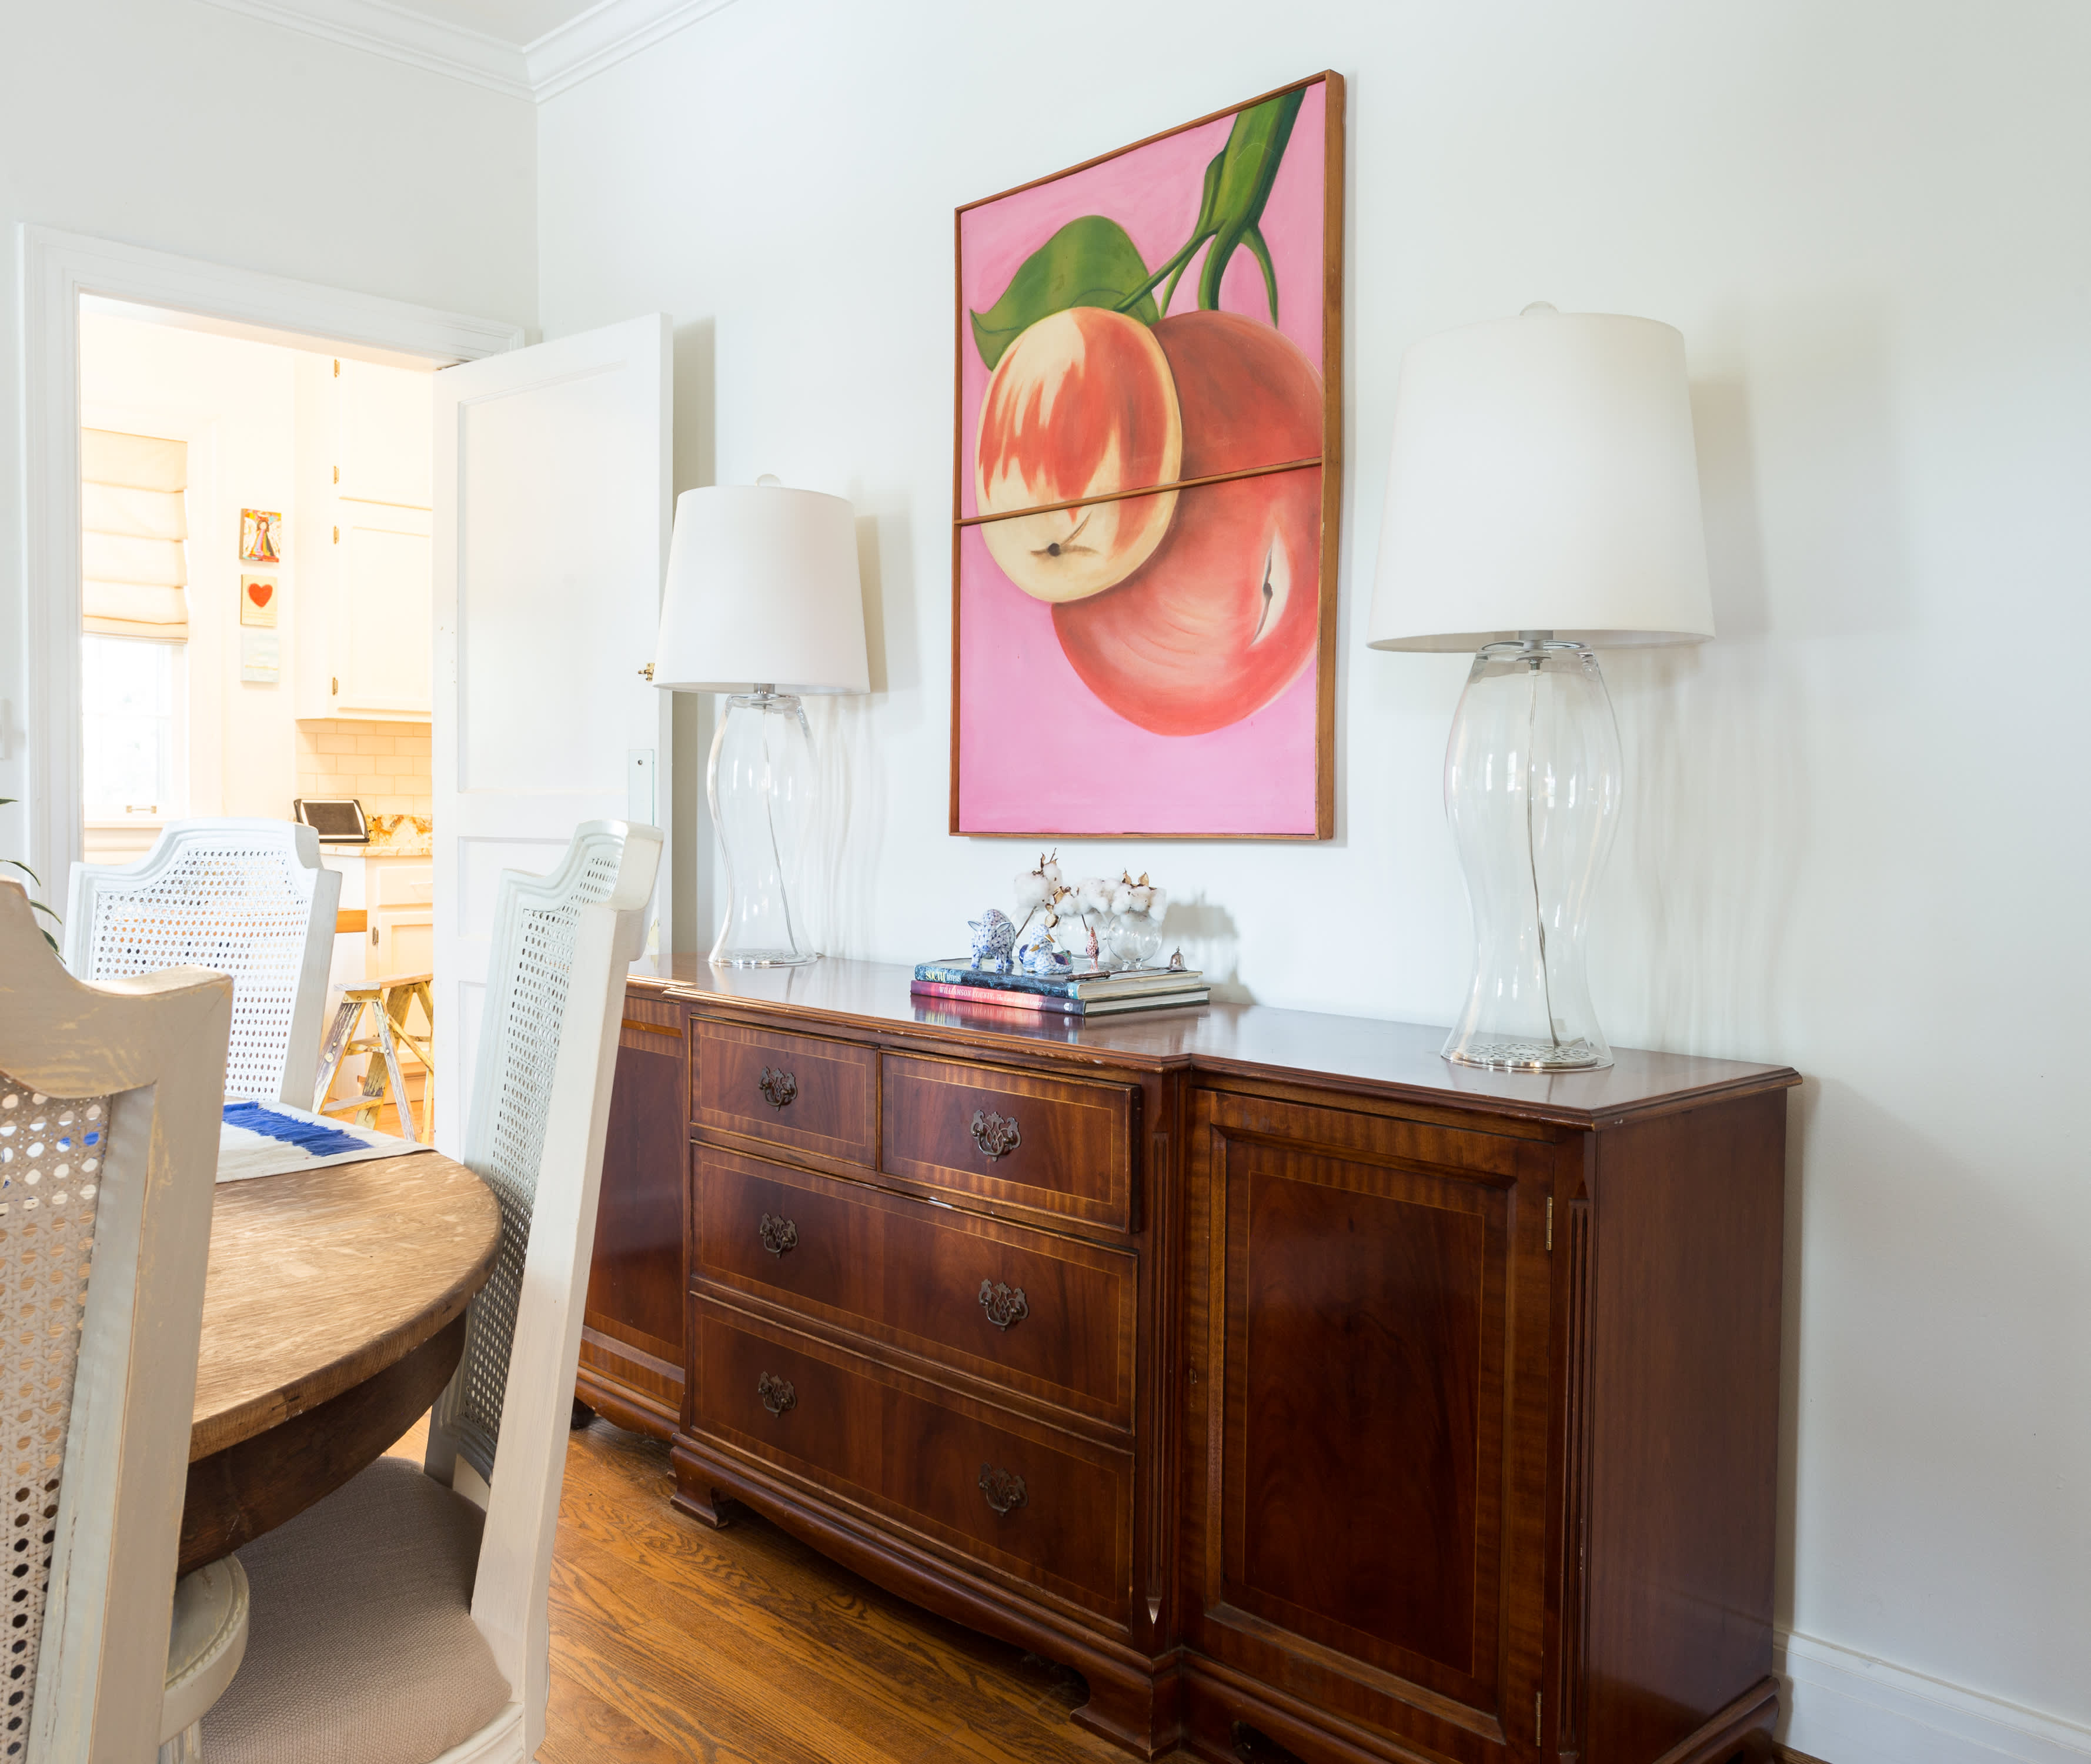 Harpers Square Apartments: House Tour: A Classic, Art-Filled Nashville Home